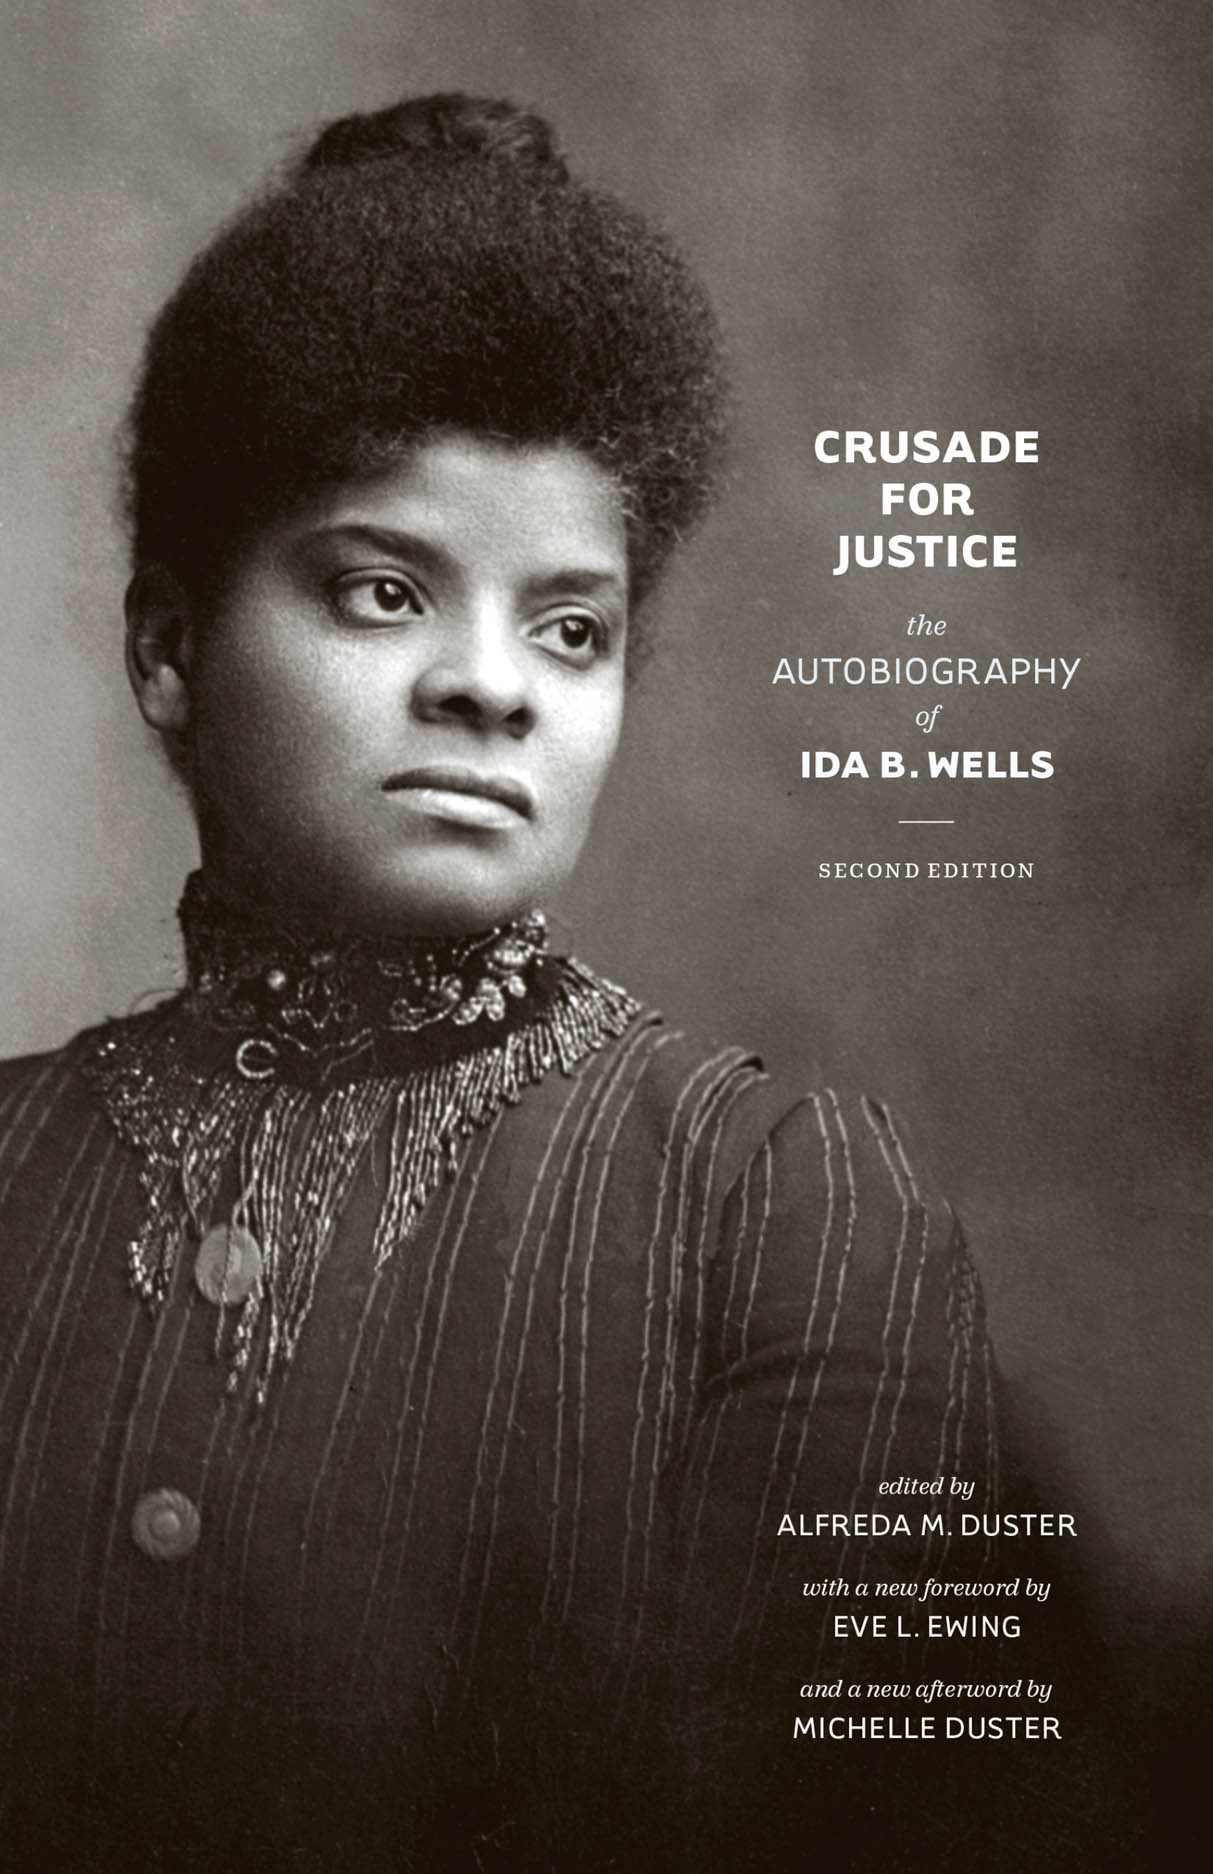 Crusade for Justice: The Autobiography of Ida B. Wells, Second Edition